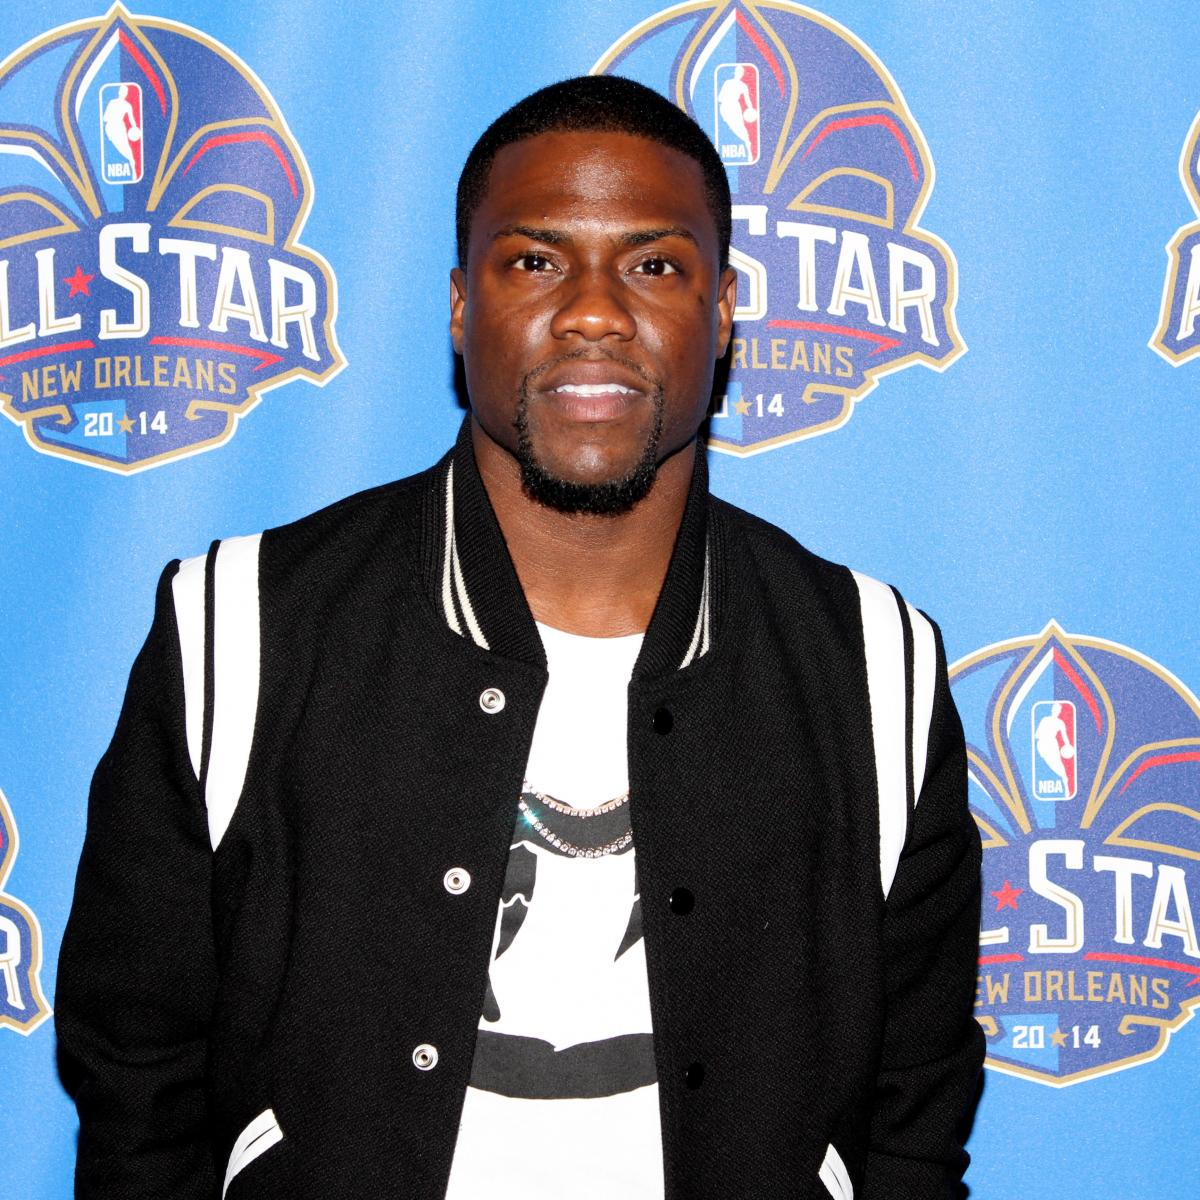 Nba Celebrity All Star Game 2019 Rosters Start Time Tv: NBA Celebrity All-Star Game 2015: Rosters, Team Coaches